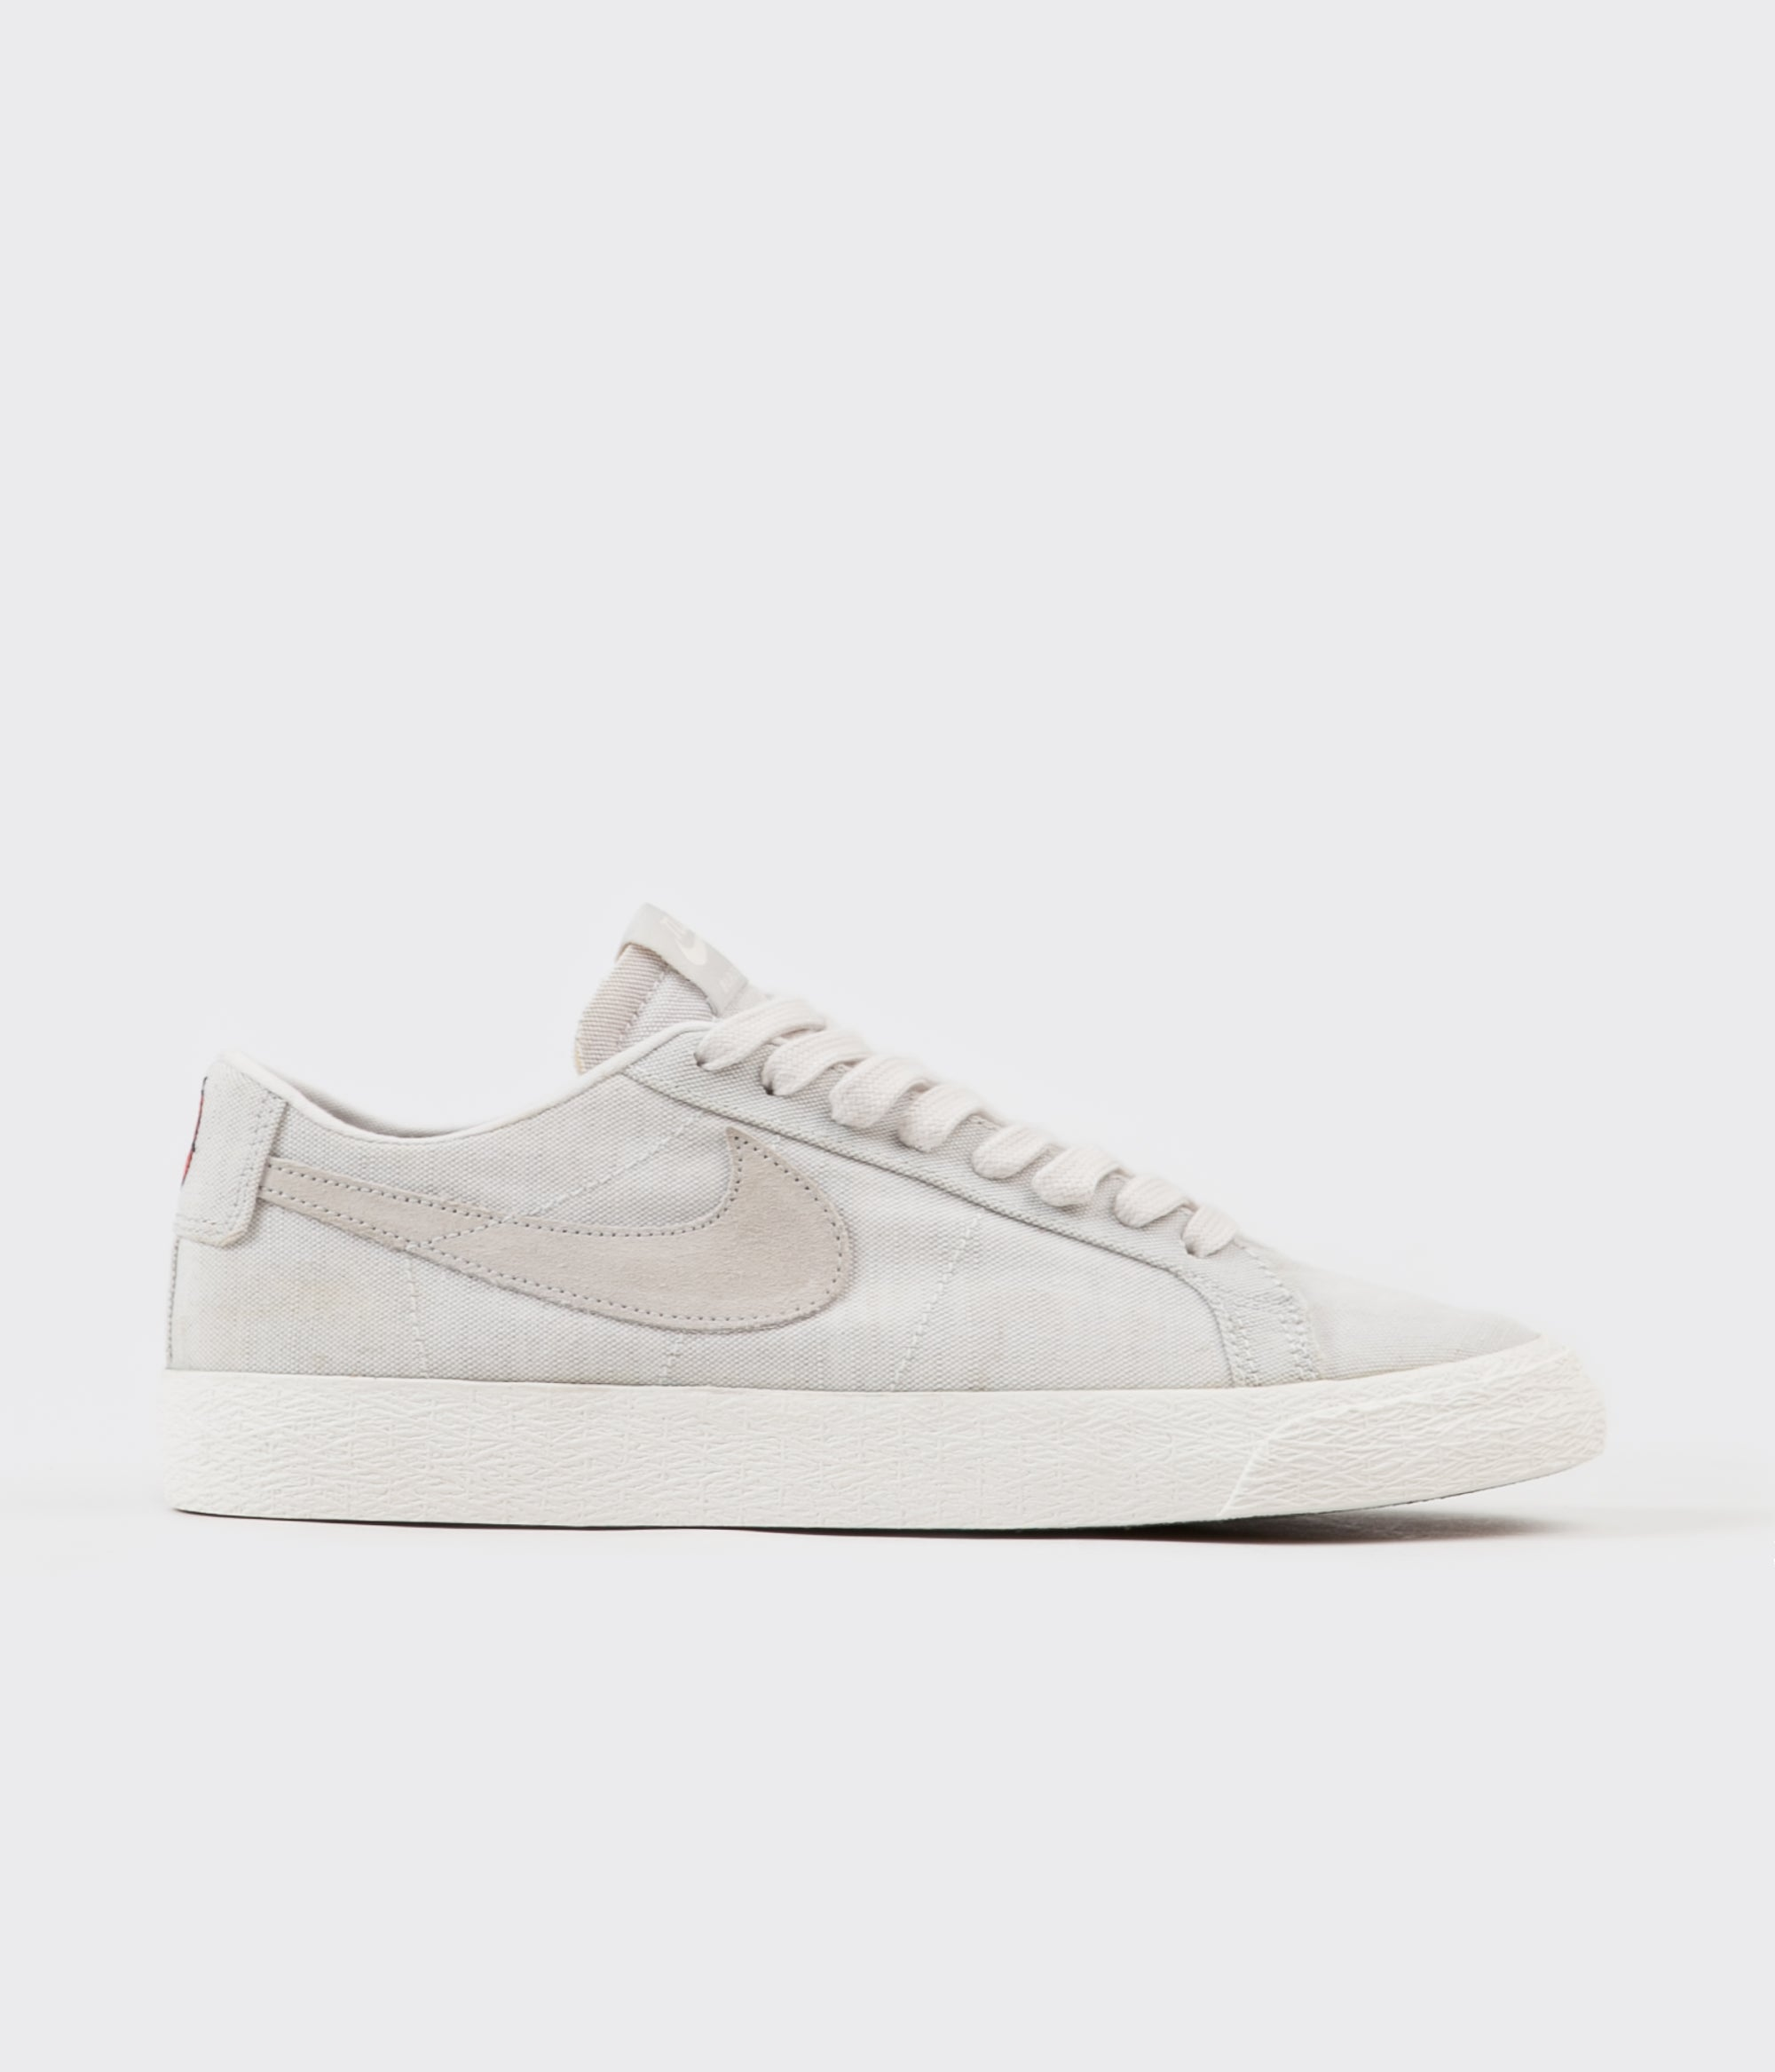 ce41698fa59 Nike SB Blazer Low Canvas Deconstructed Shoes - Phantom   Light Bone - Habanero  Red